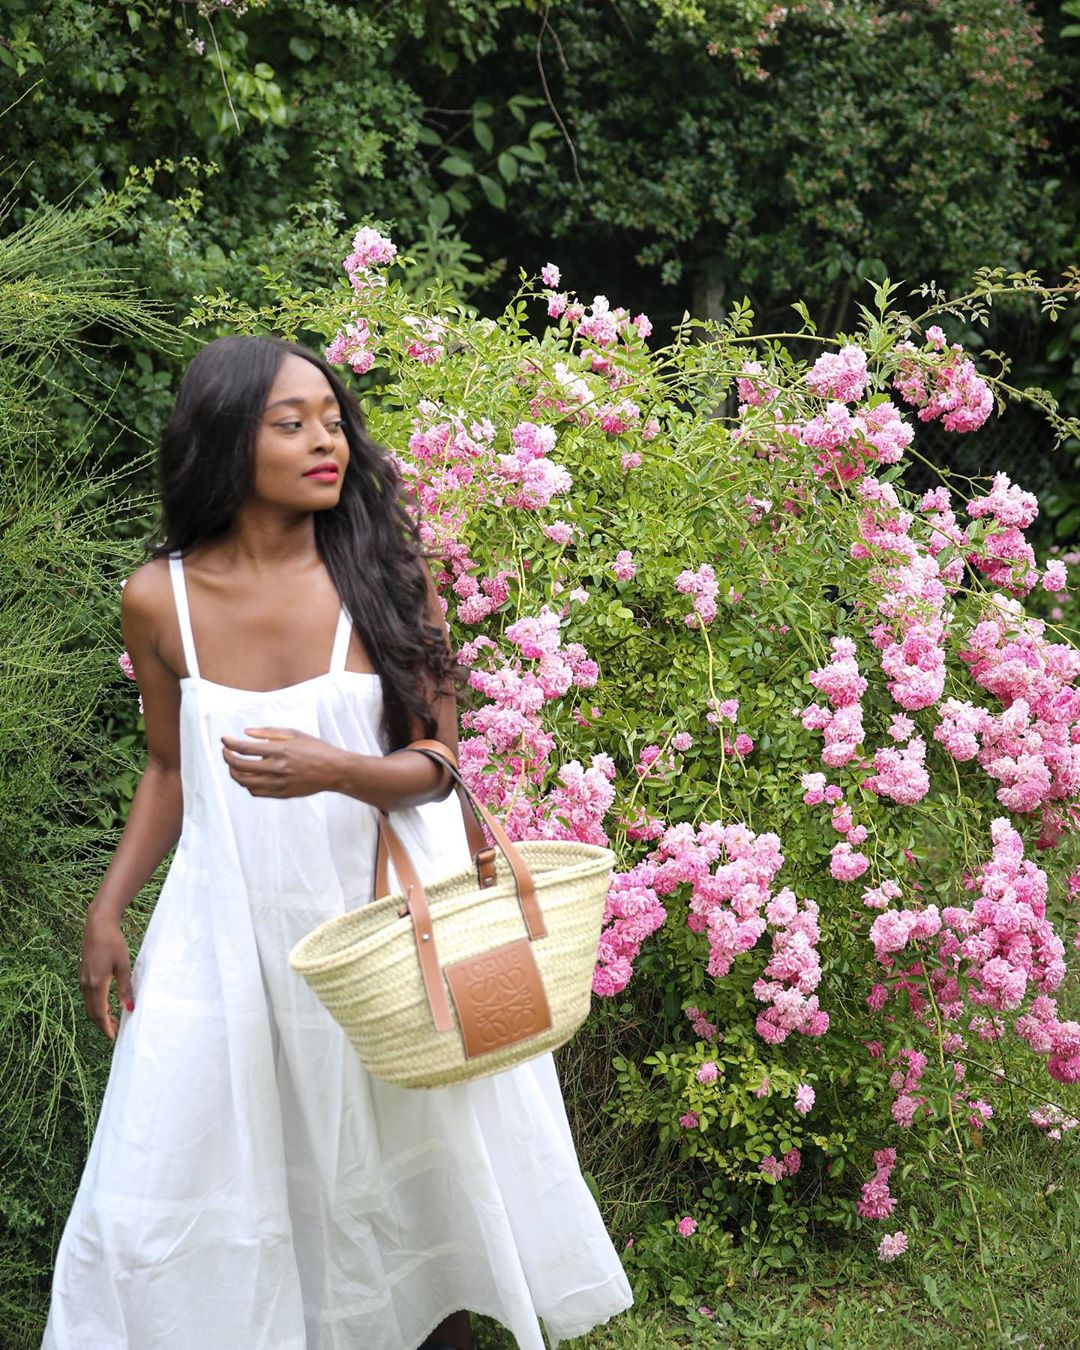 25 of the Most Stylish White Dresses Under $100 — @linaose Instagram outfit idea